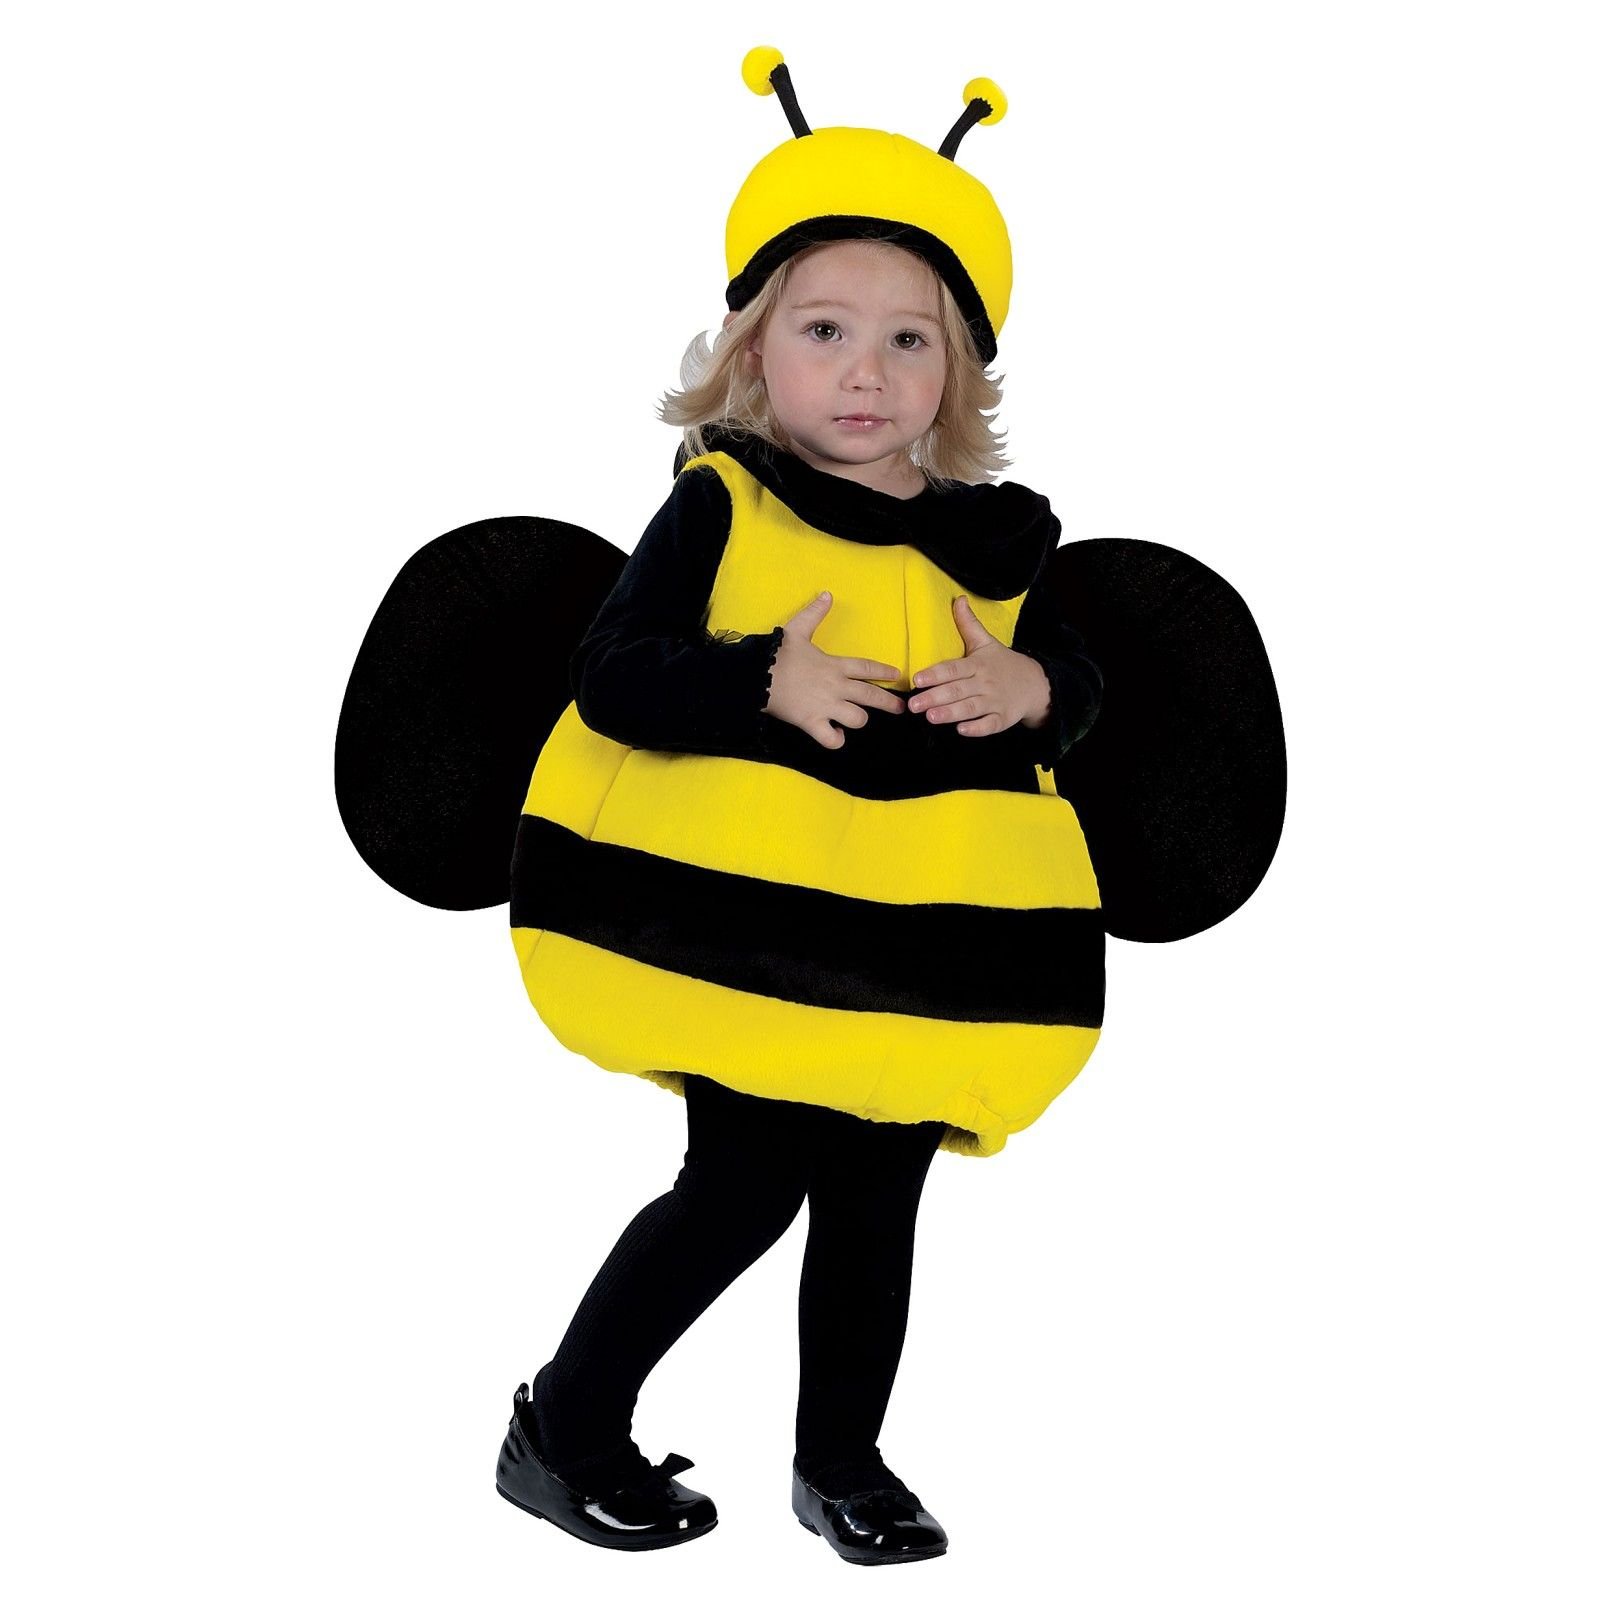 Cute Baby Costumes - Bumble Bee Infant Costume | Costumes for All ...